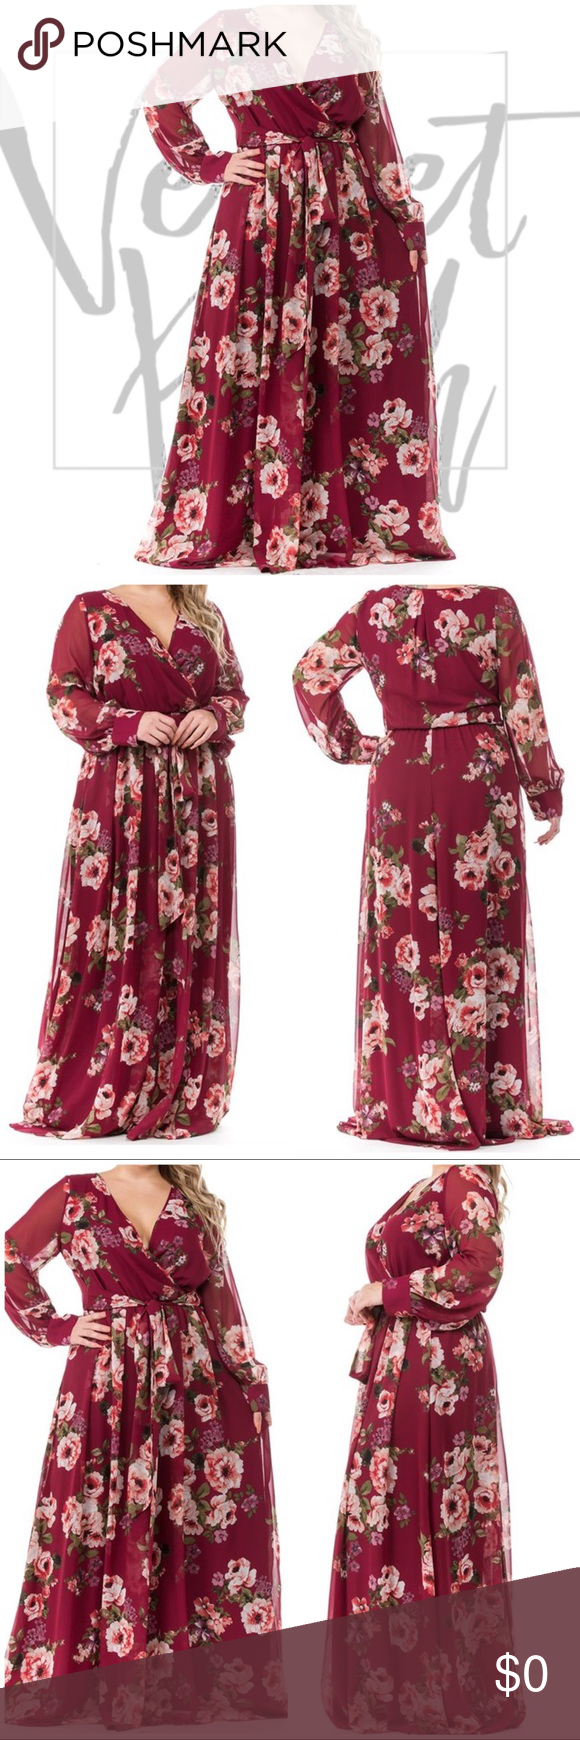 Photo of JUST IN!! Plus Size Burgundy Floral Maxi Dress Premium Collection- Long Drape V …